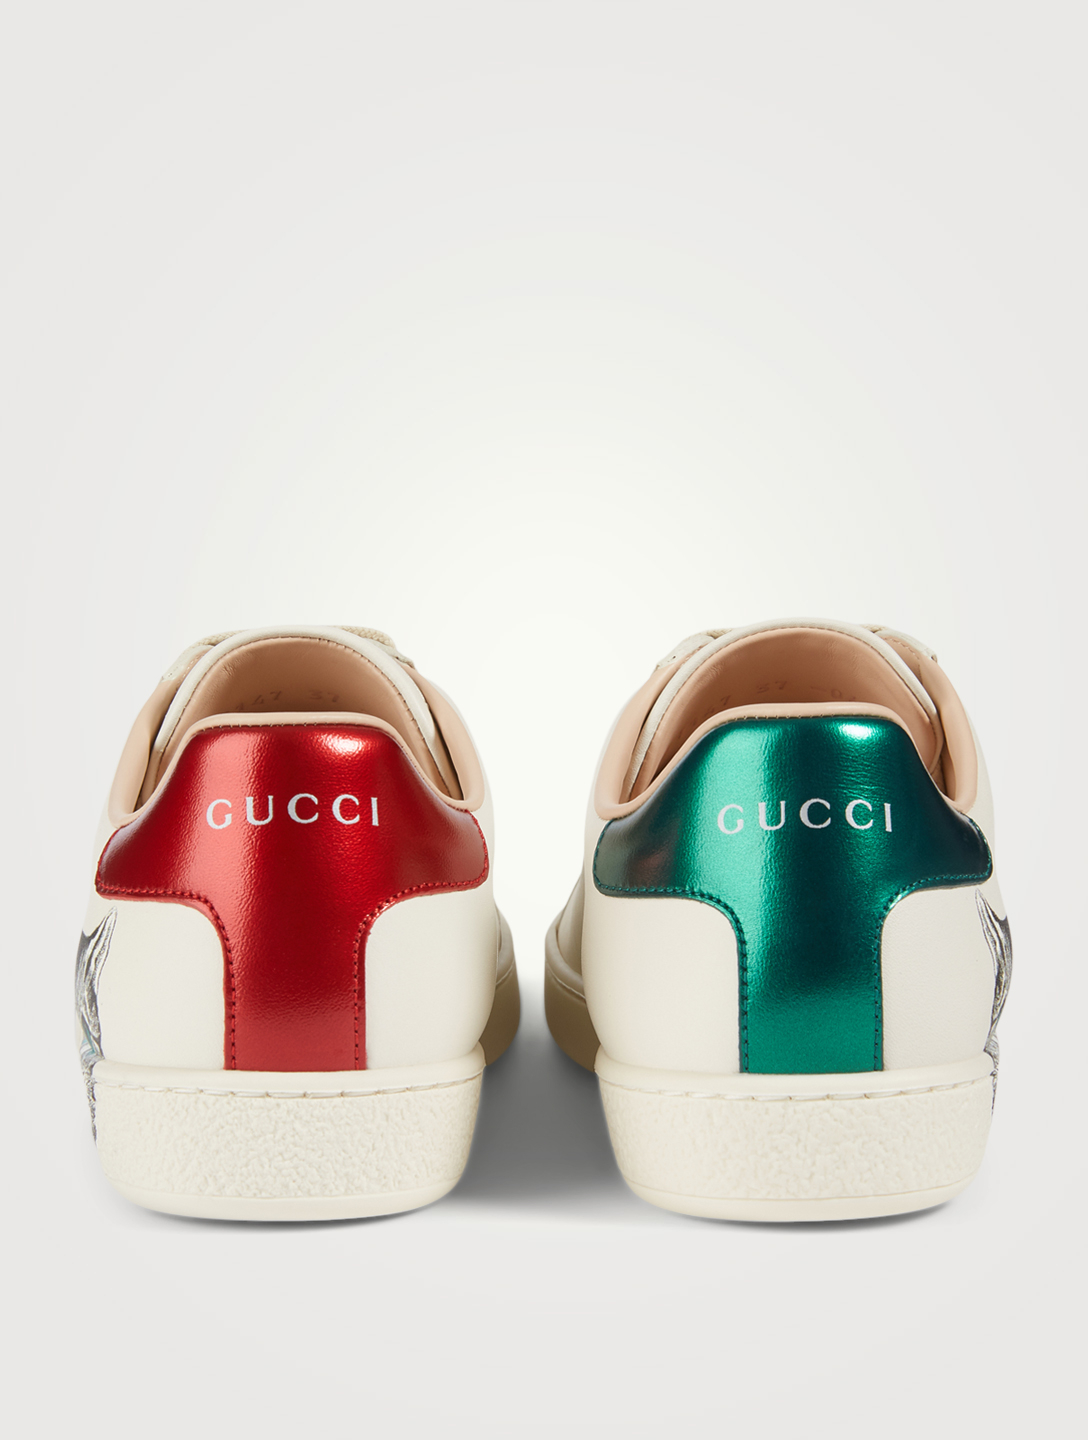 GUCCI Ace Leather Sneakers With Mystic Cat Print Women's White